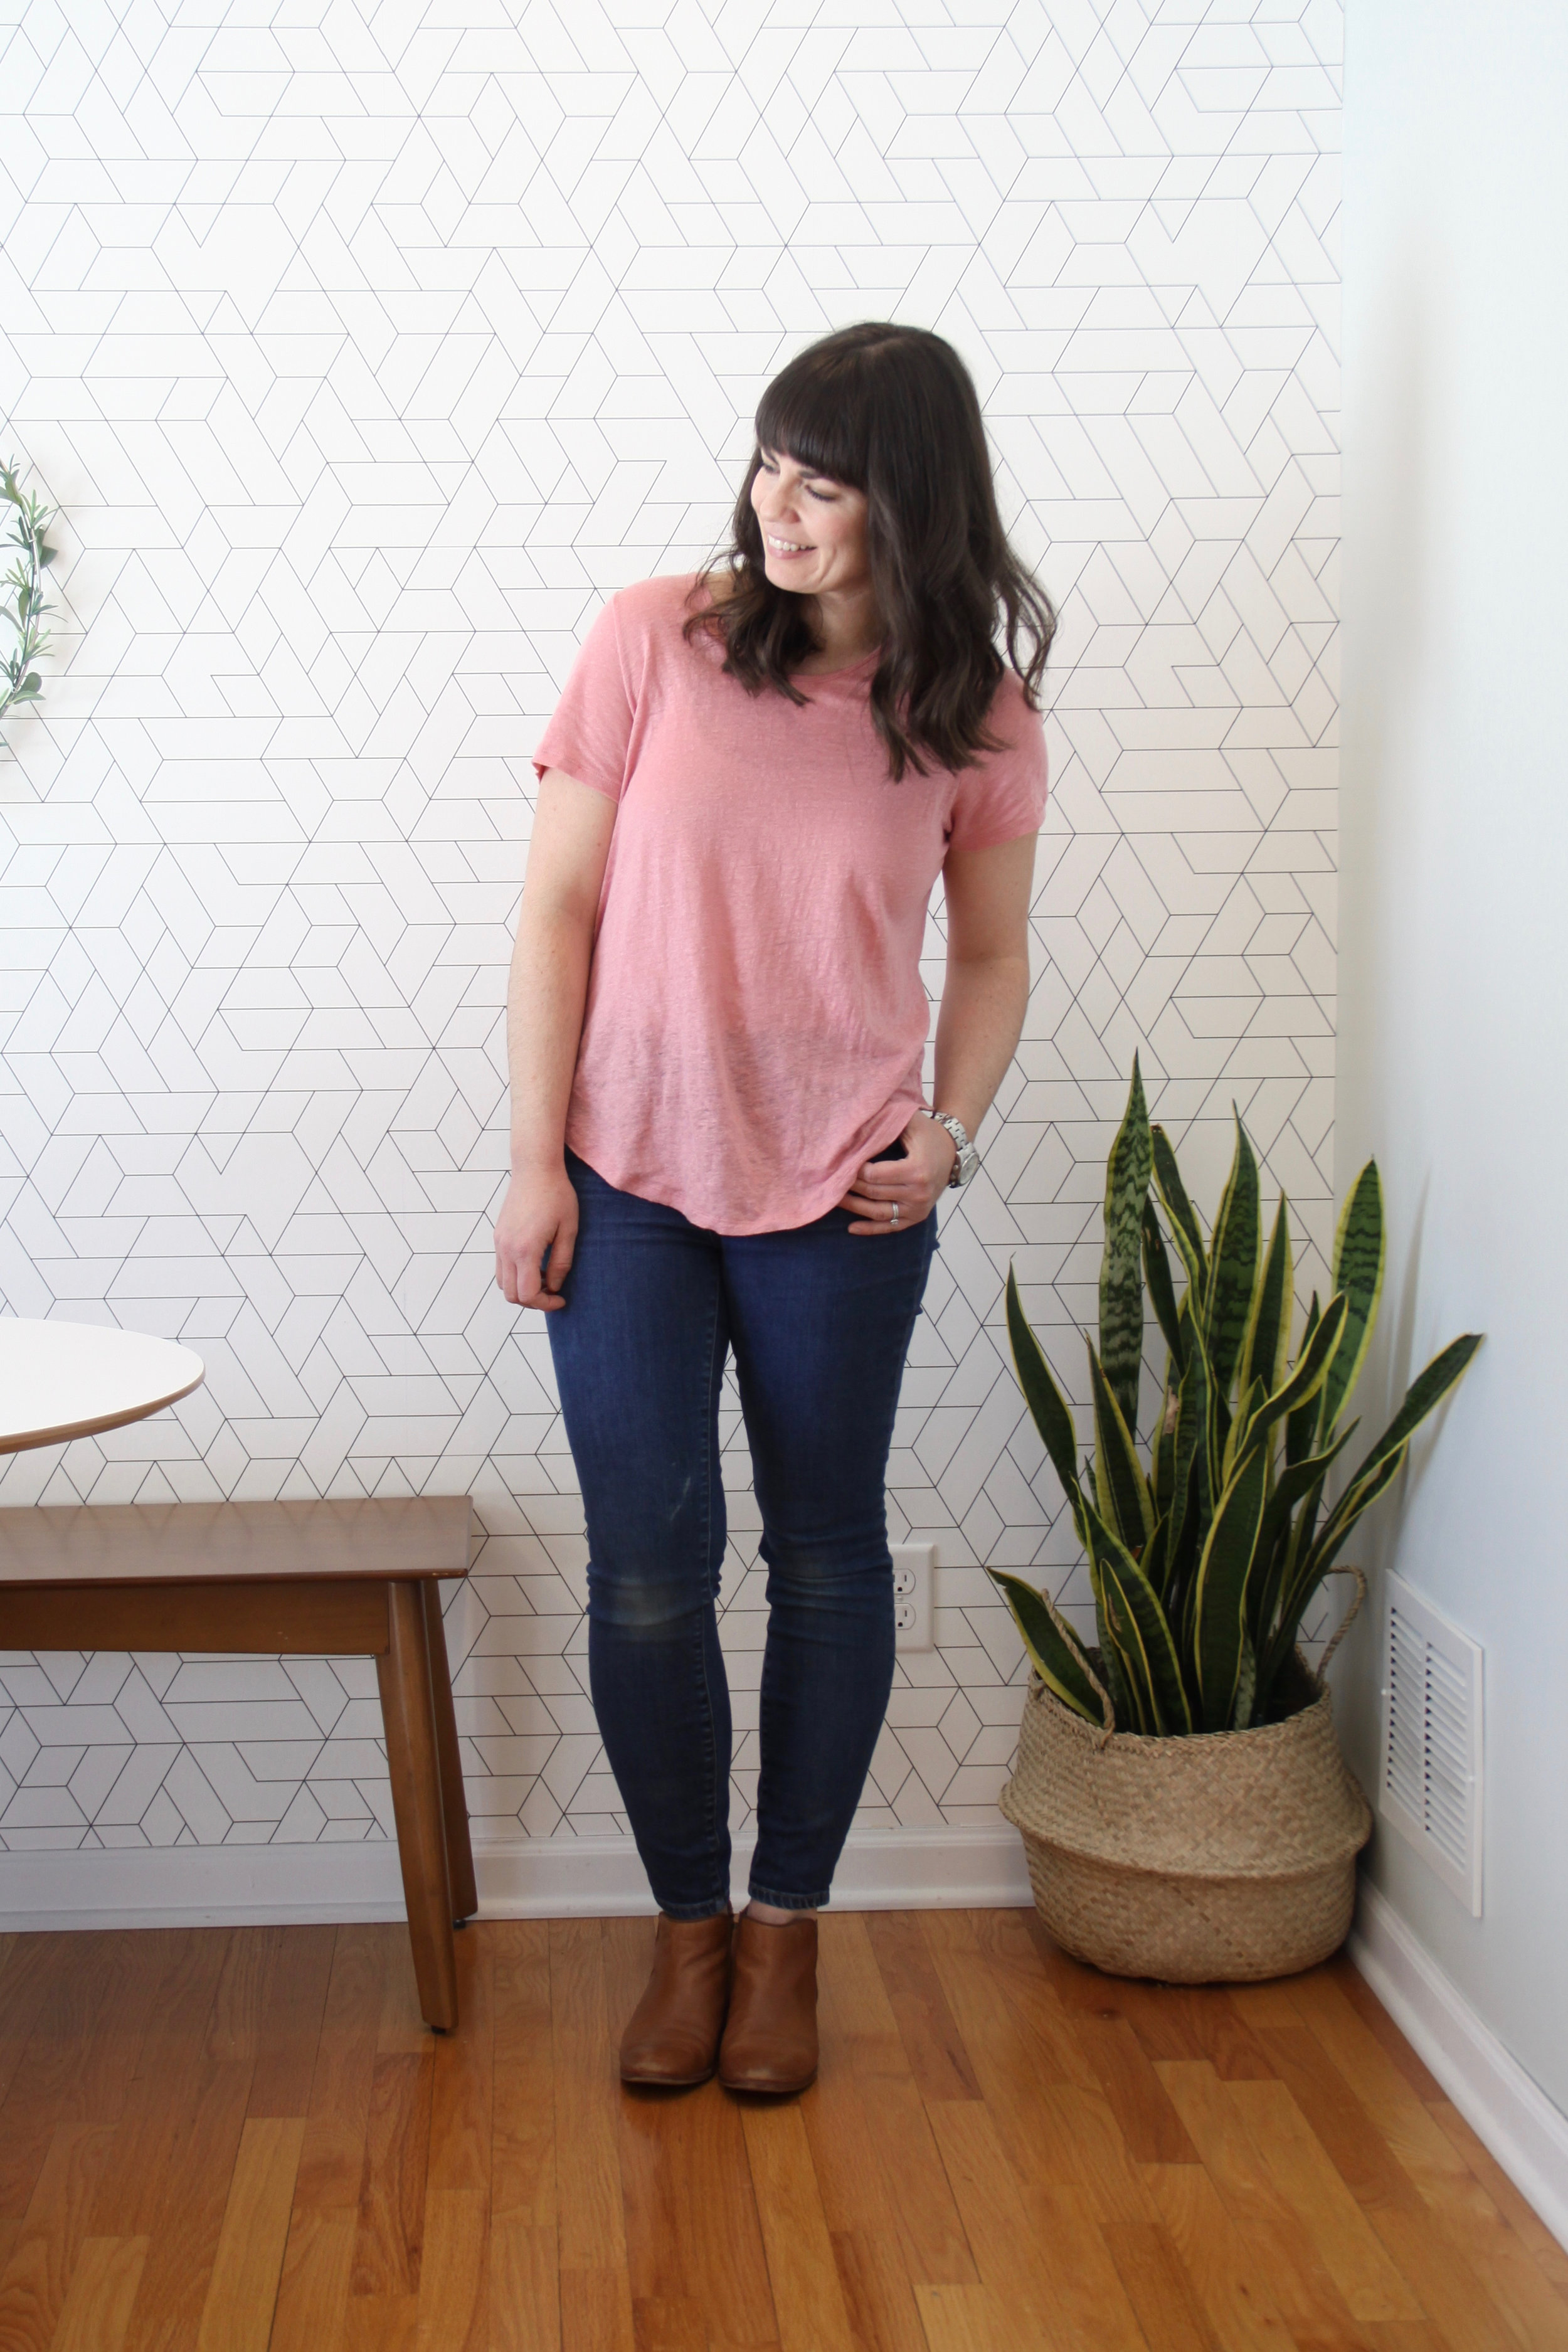 Spring 10 x 10 Wardrobe Challenge Pink Linen Tee and Madewell Skinny Jeans